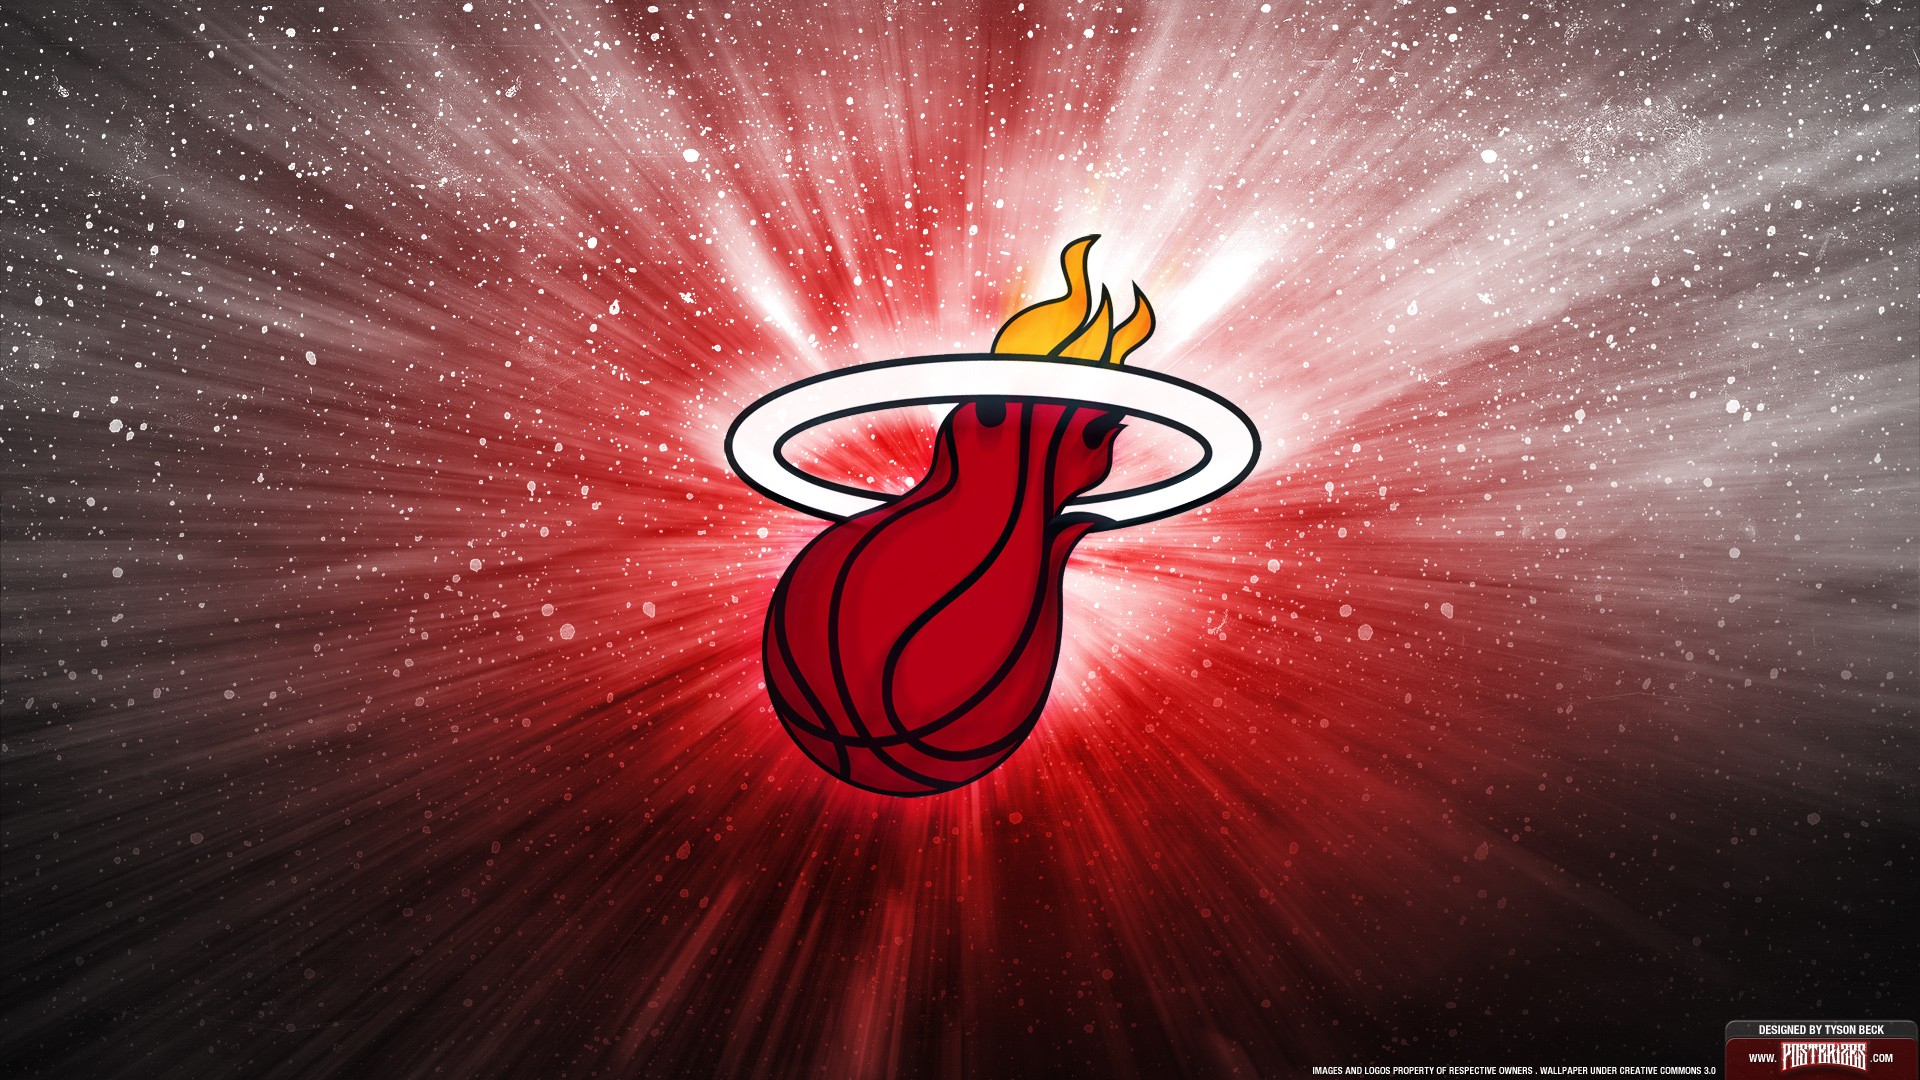 Miami Heat HD Wallpaper Background Image 1920x1080 ID512049 1920x1080